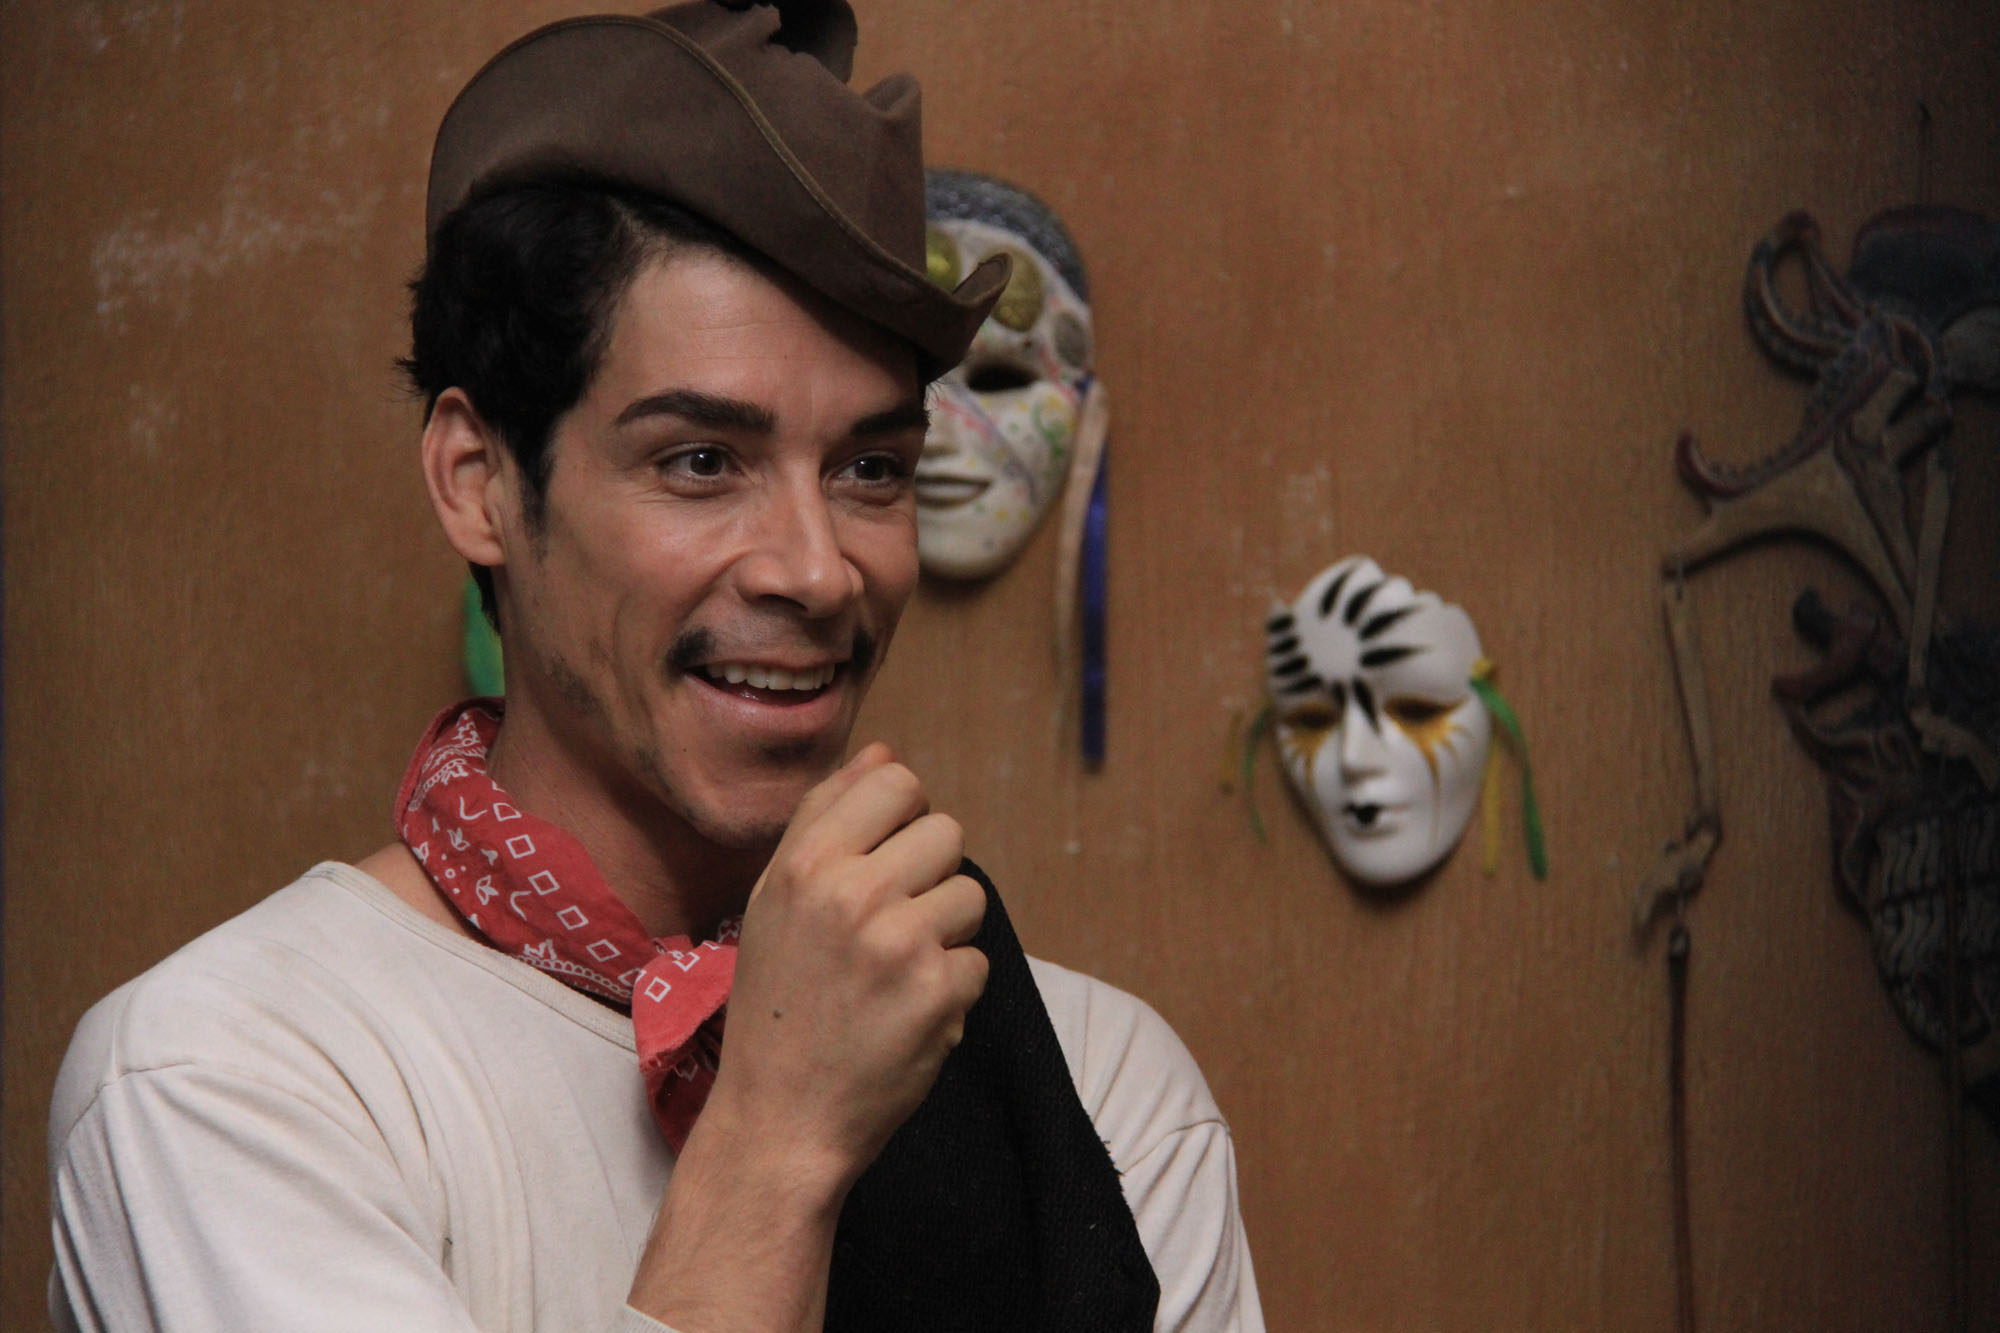 Spanish Actor Oscar Jaenada On the Struggles of Playing Cantinflas, Mexico's Beloved Comedy Legend